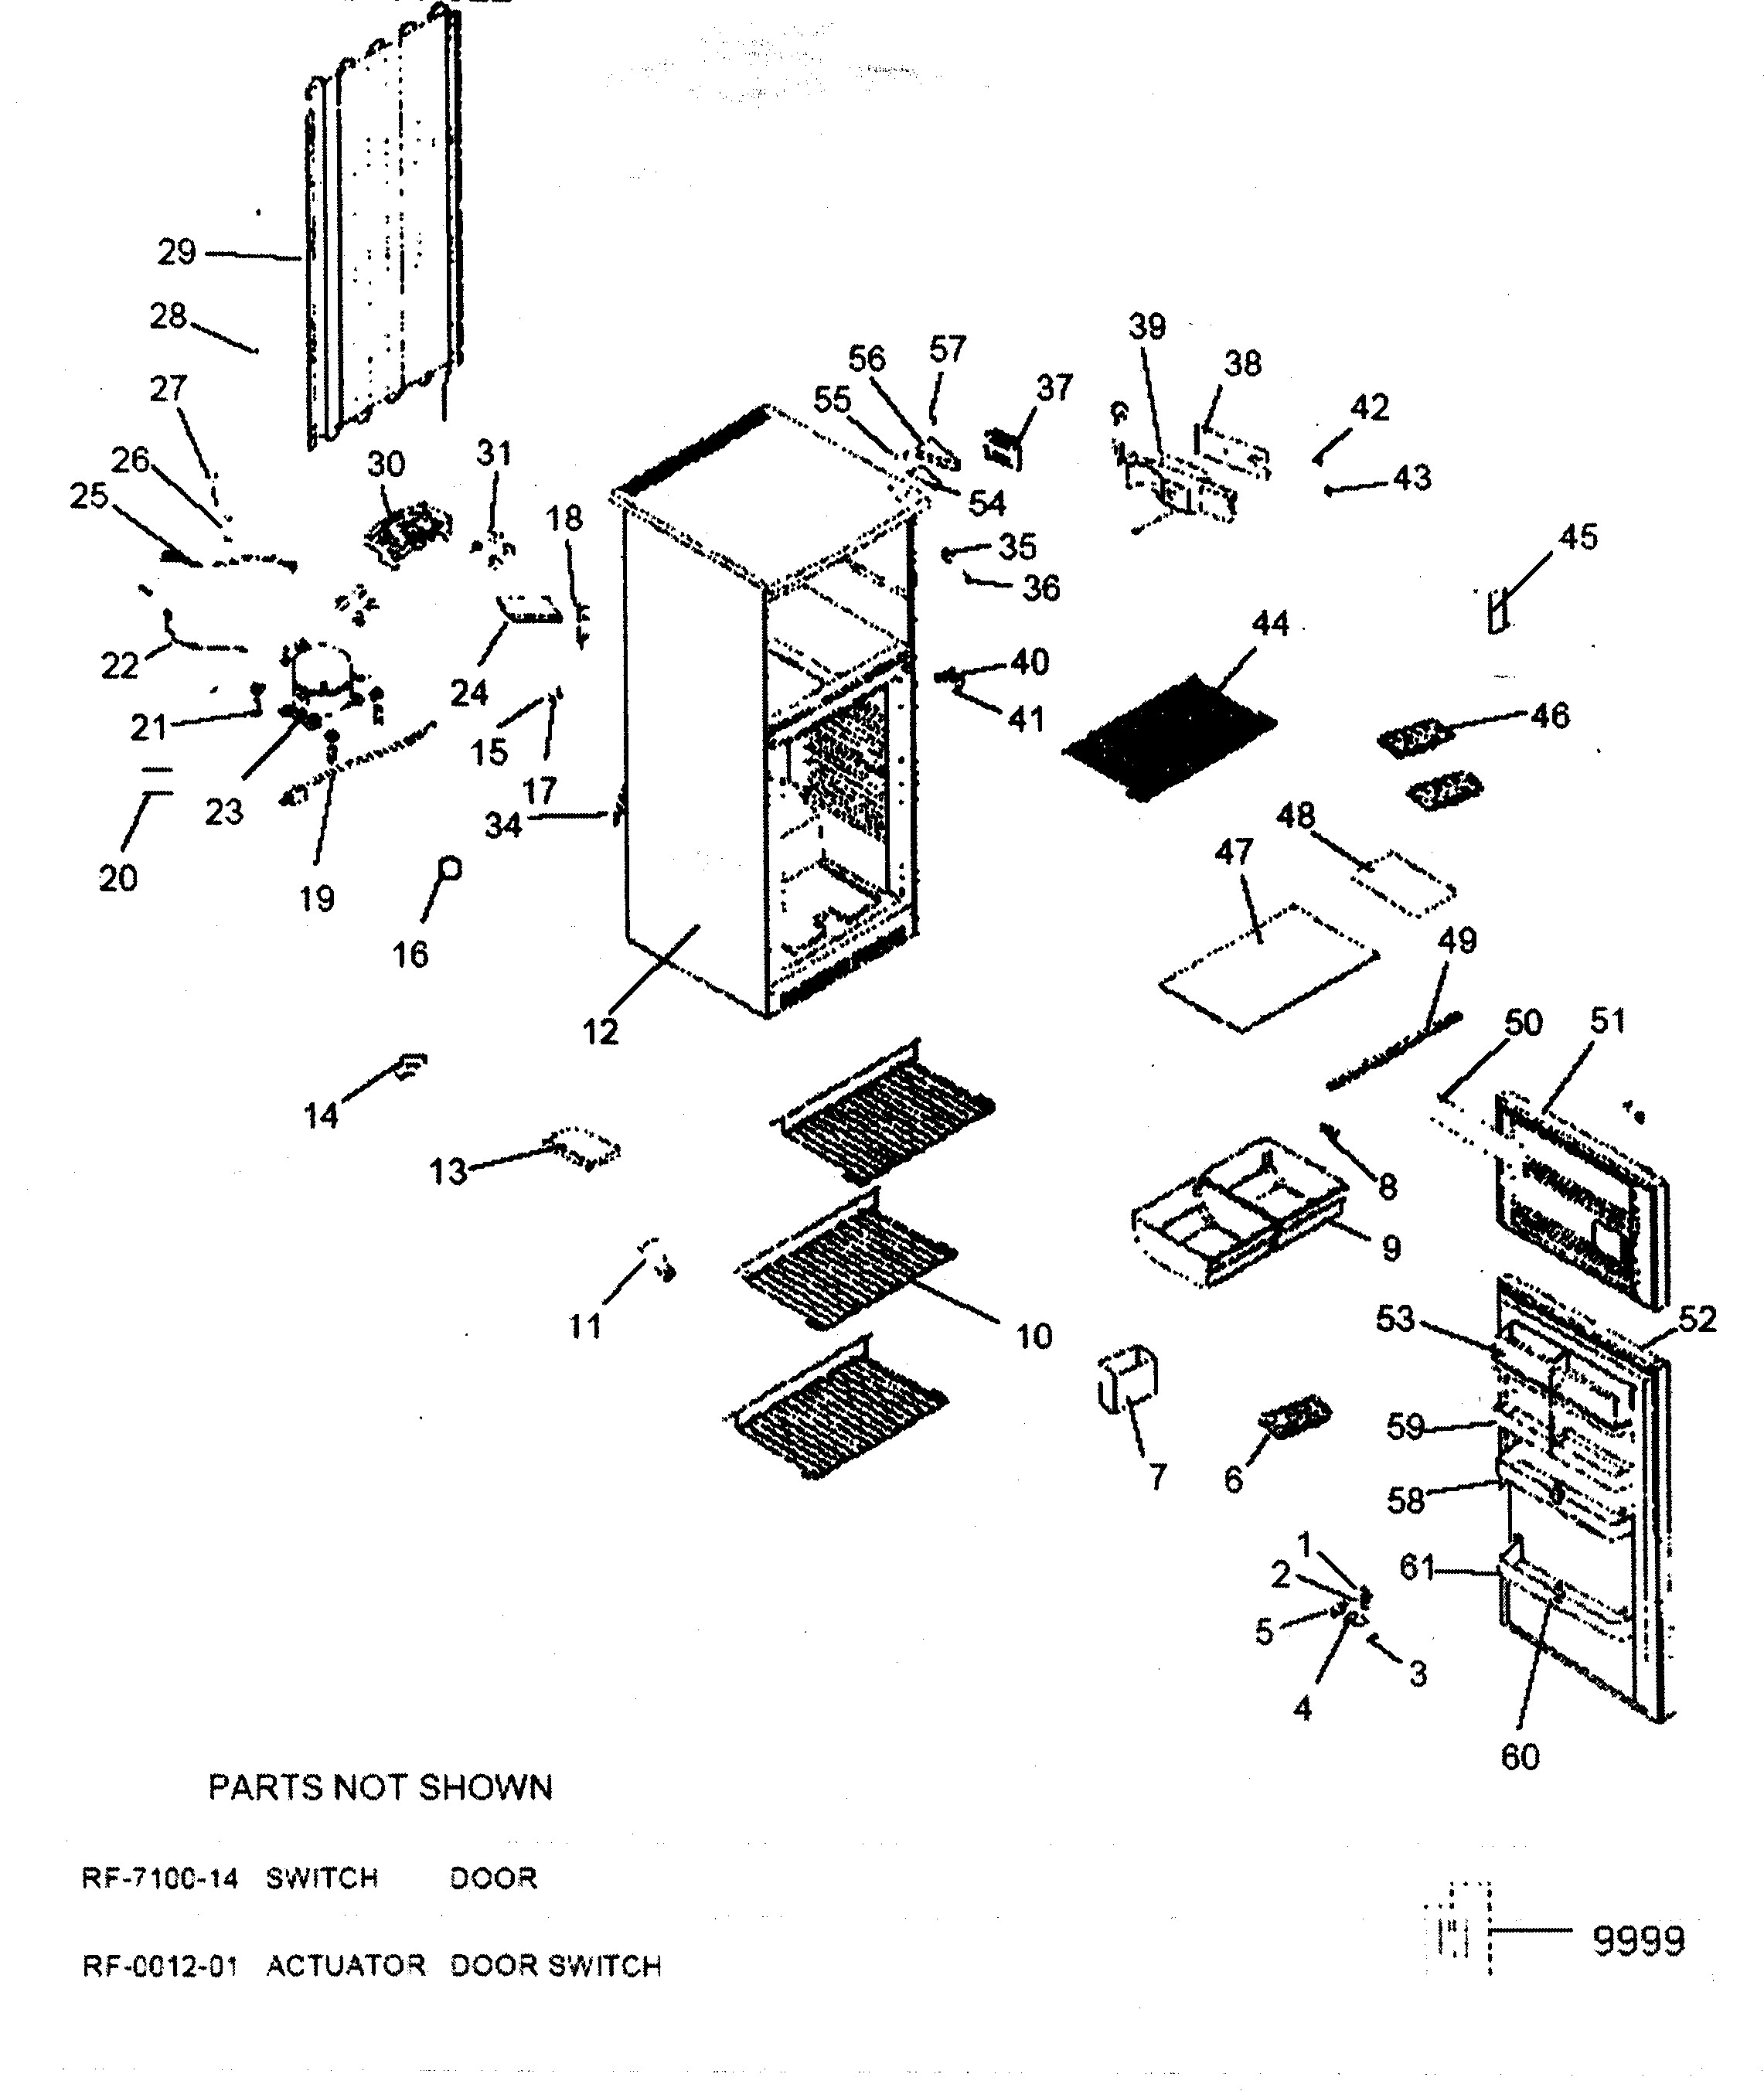 Haier Refrigerator Parts Diagram Haier Model Hde10wnaww top Mount Refrigerator Genuine Parts Of Haier Refrigerator Parts Diagram